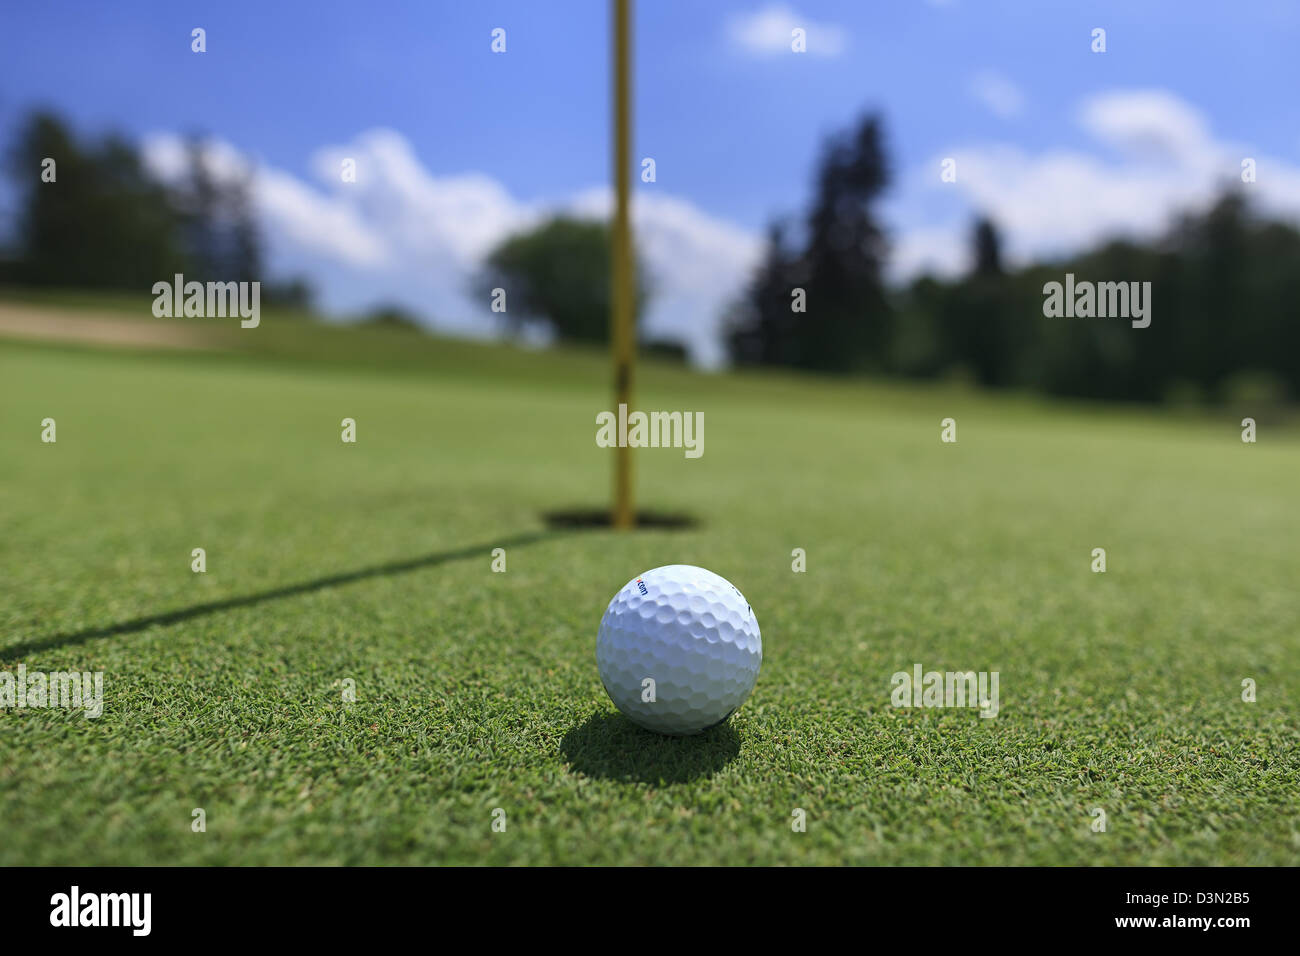 Golf ball on green, close up - Stock Image